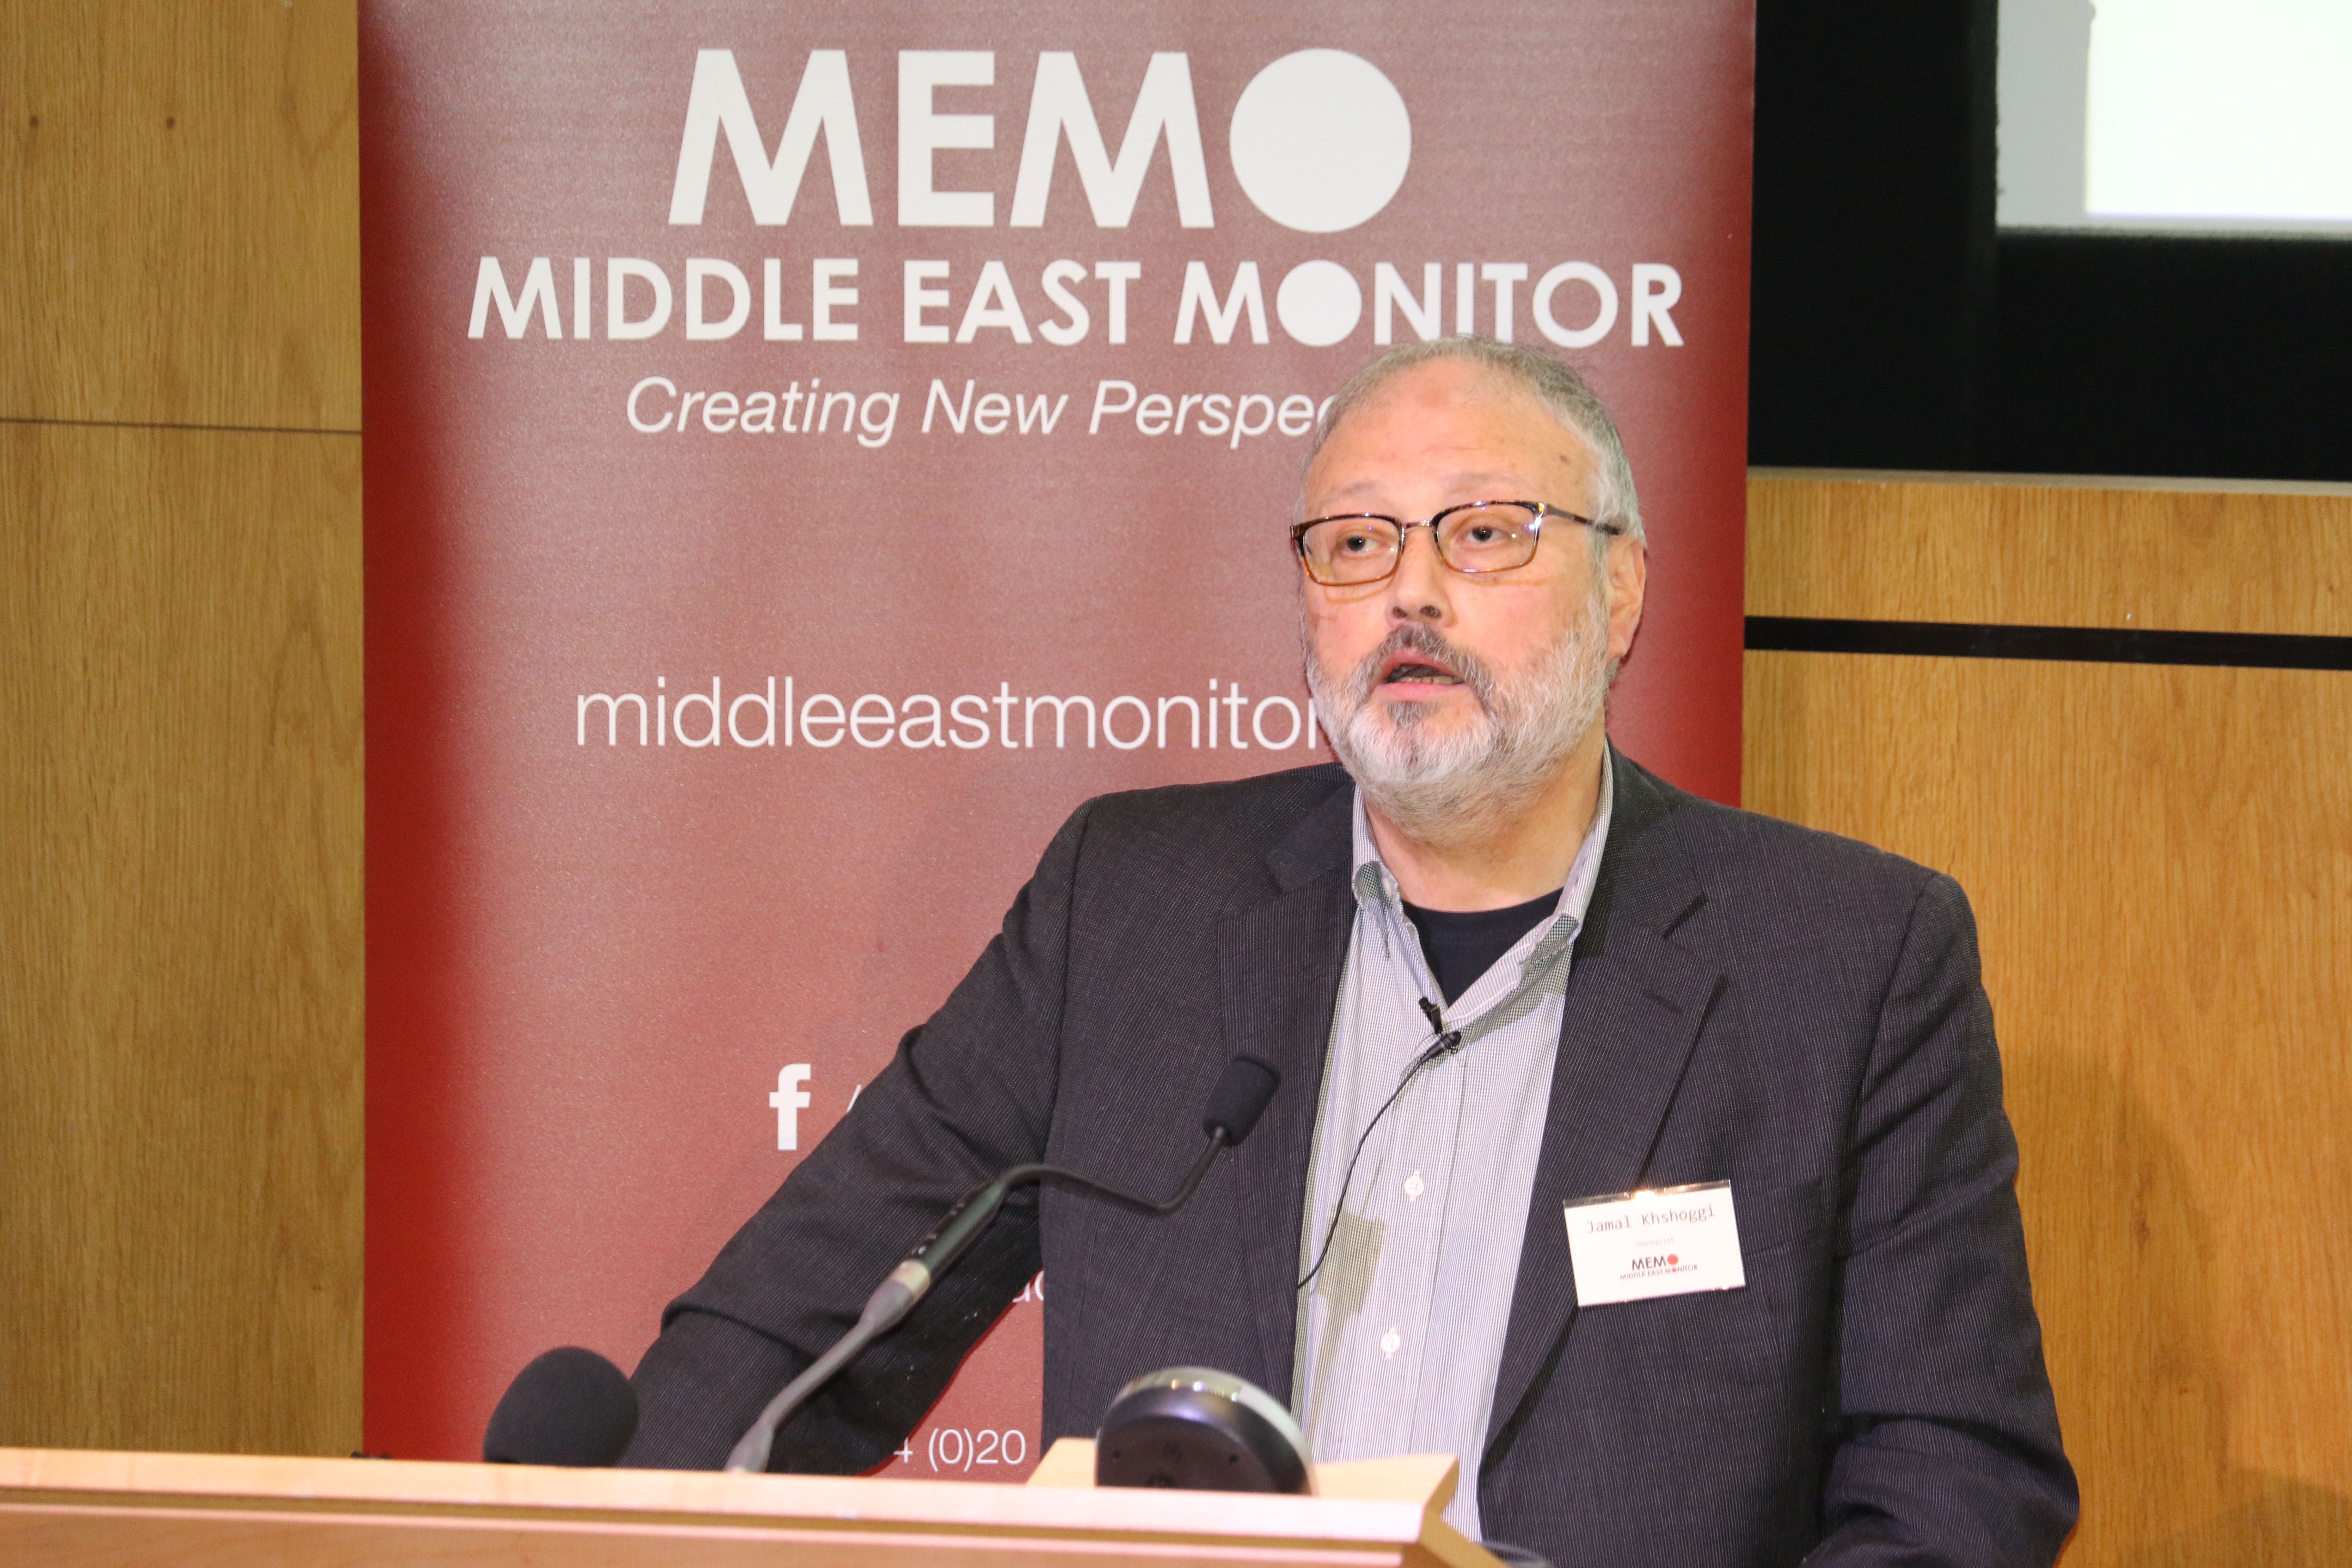 Saudi dissident Jamal Khashoggi speaks at an event hosted by Middle East Monitor in London, Sept. 29, 2018.